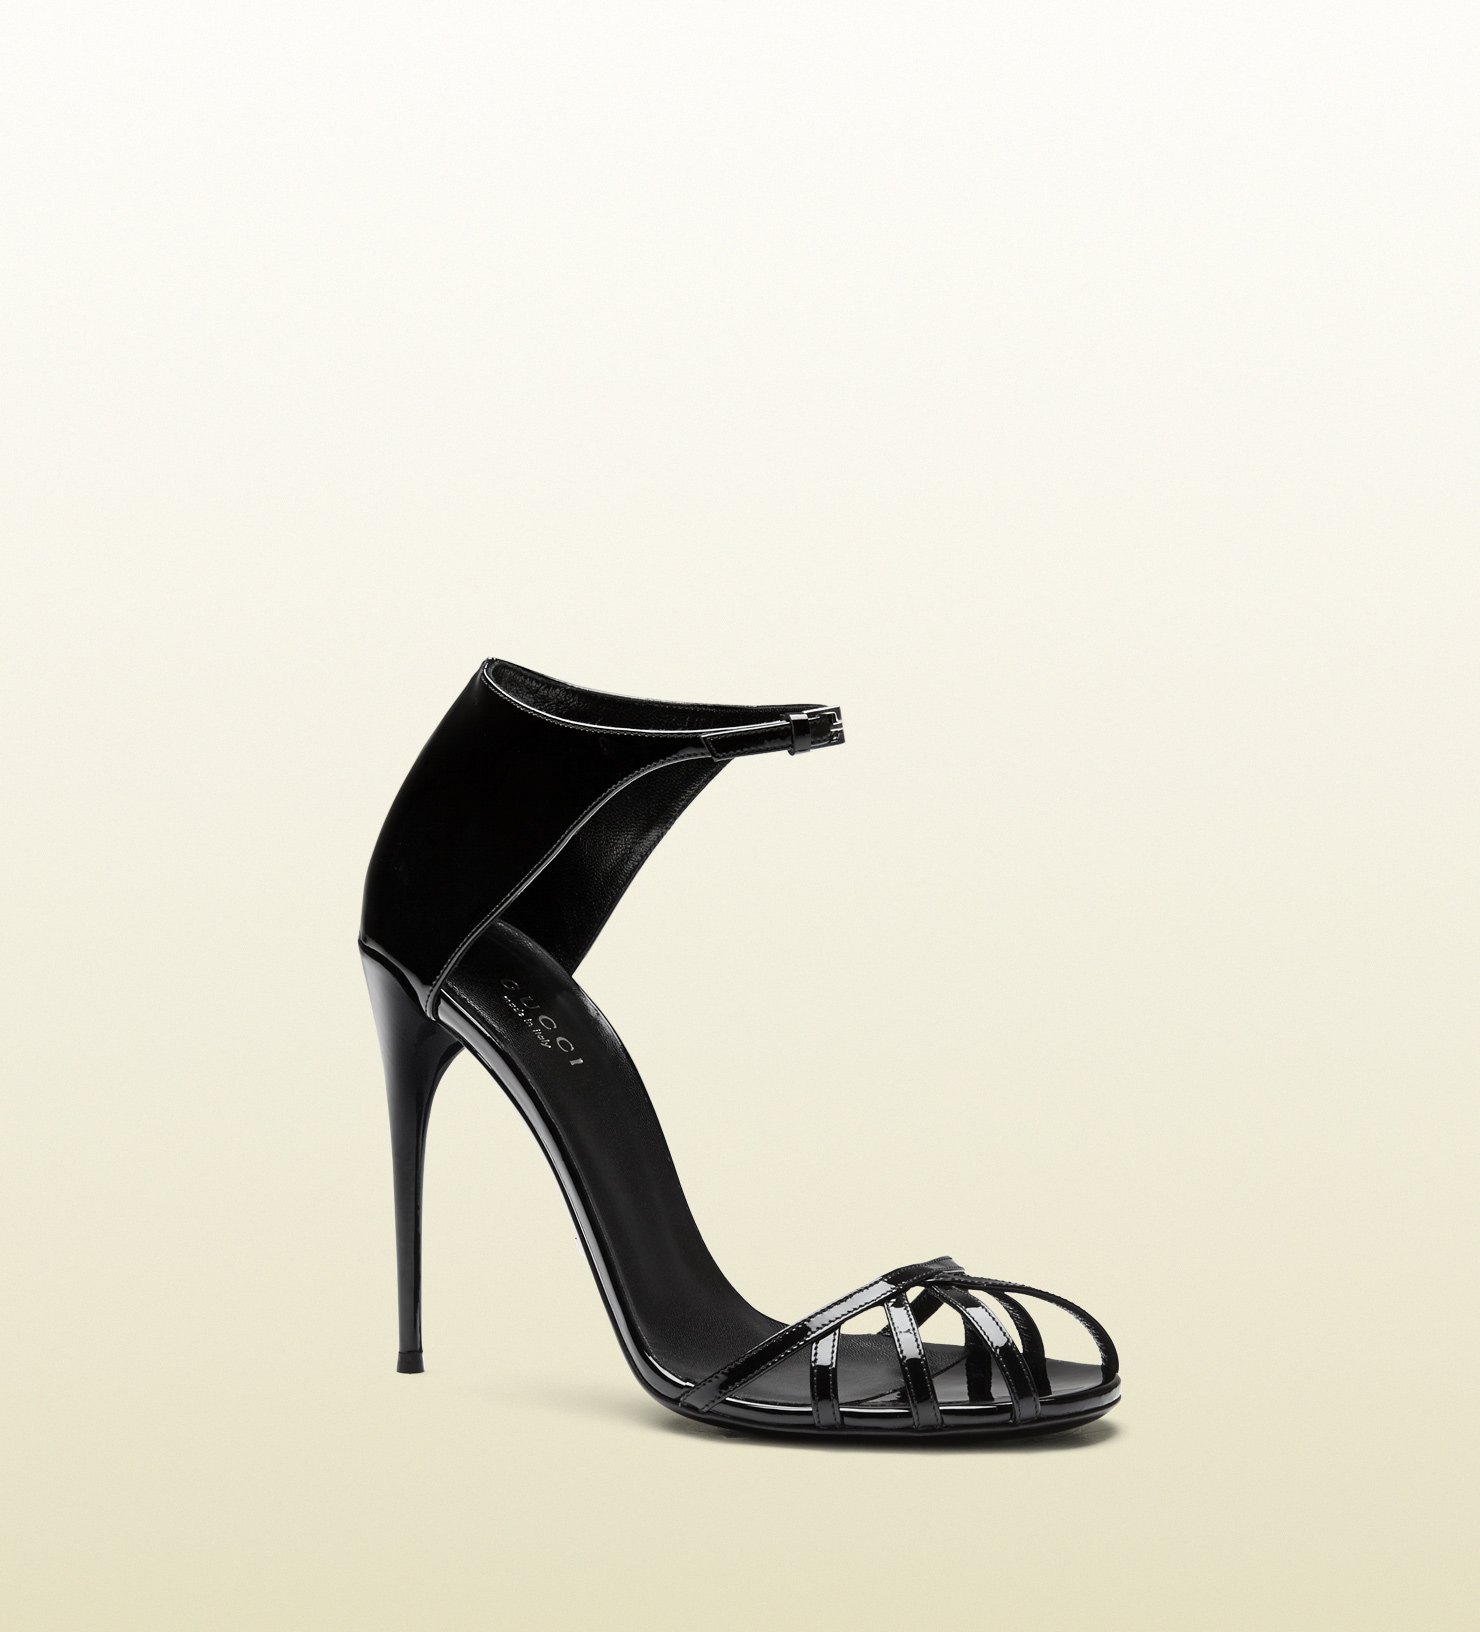 97de25a9eb26 Lyst - Gucci Margot Patent Leather Cage Sandal in Black